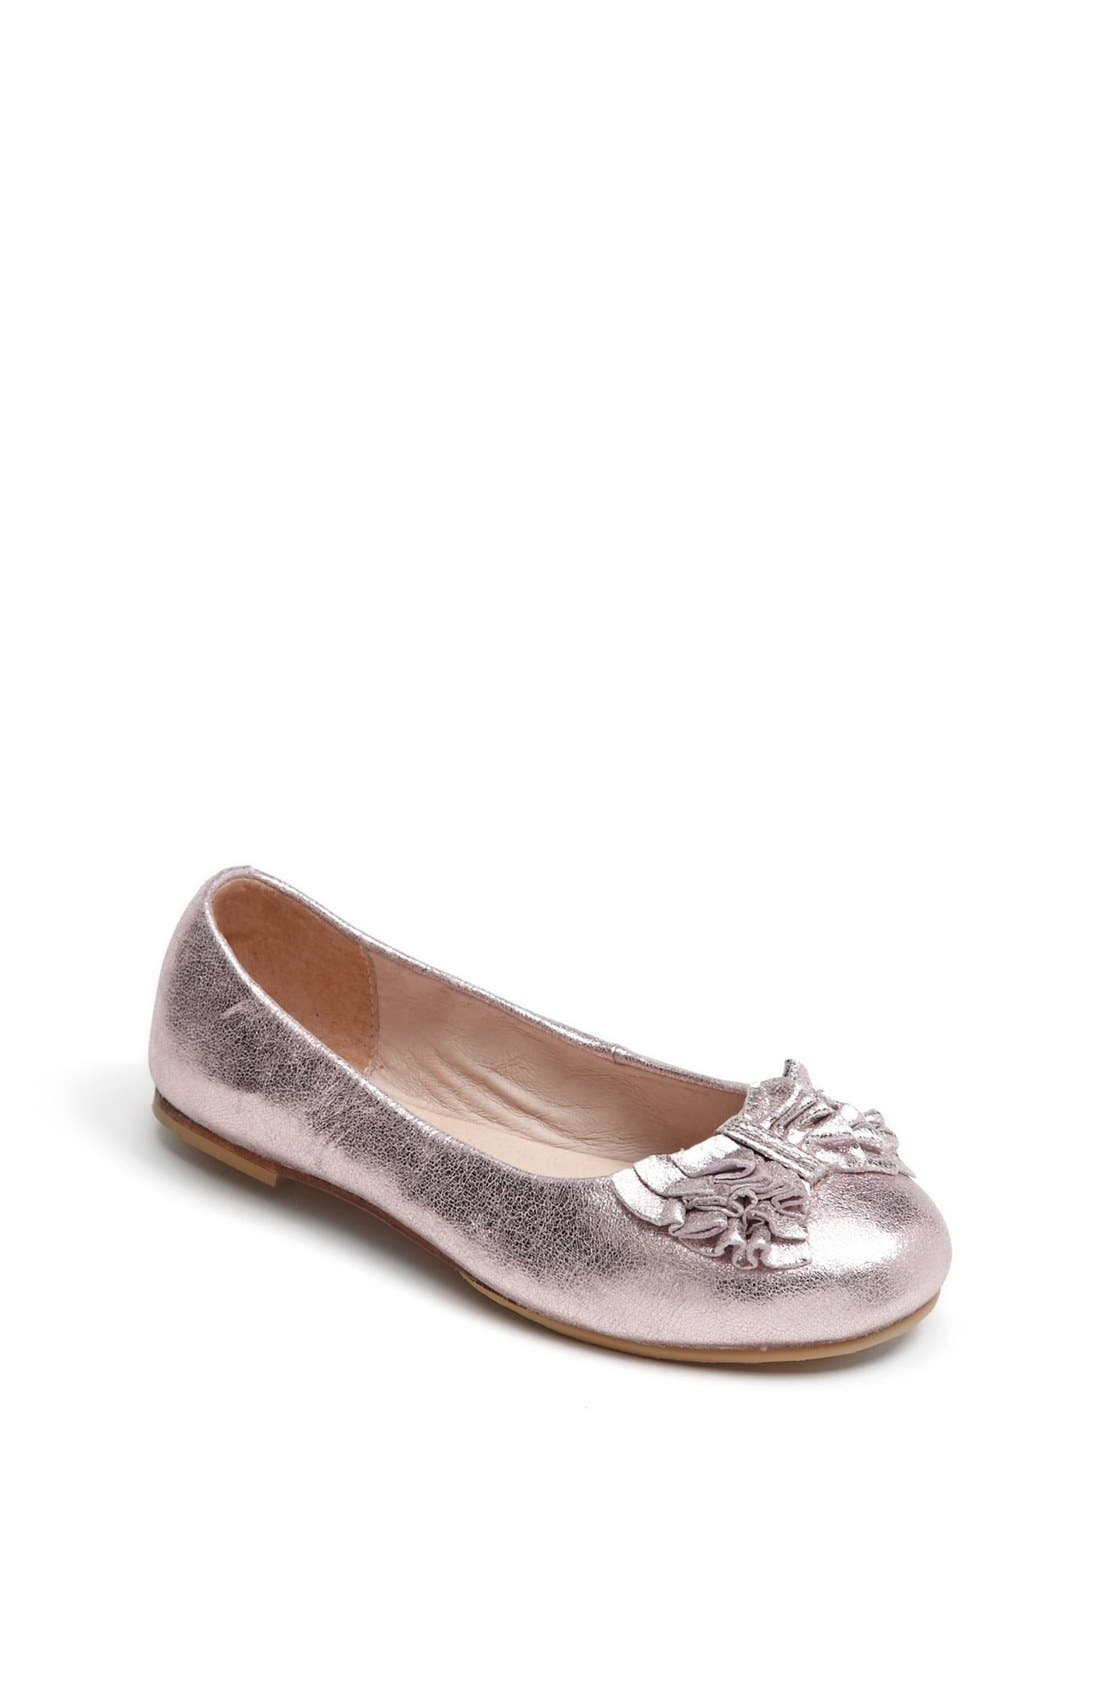 Alternate Image 1 Selected - Bloch 'Raphaela' Flat (Toddler, Little Kid & Big Kid)